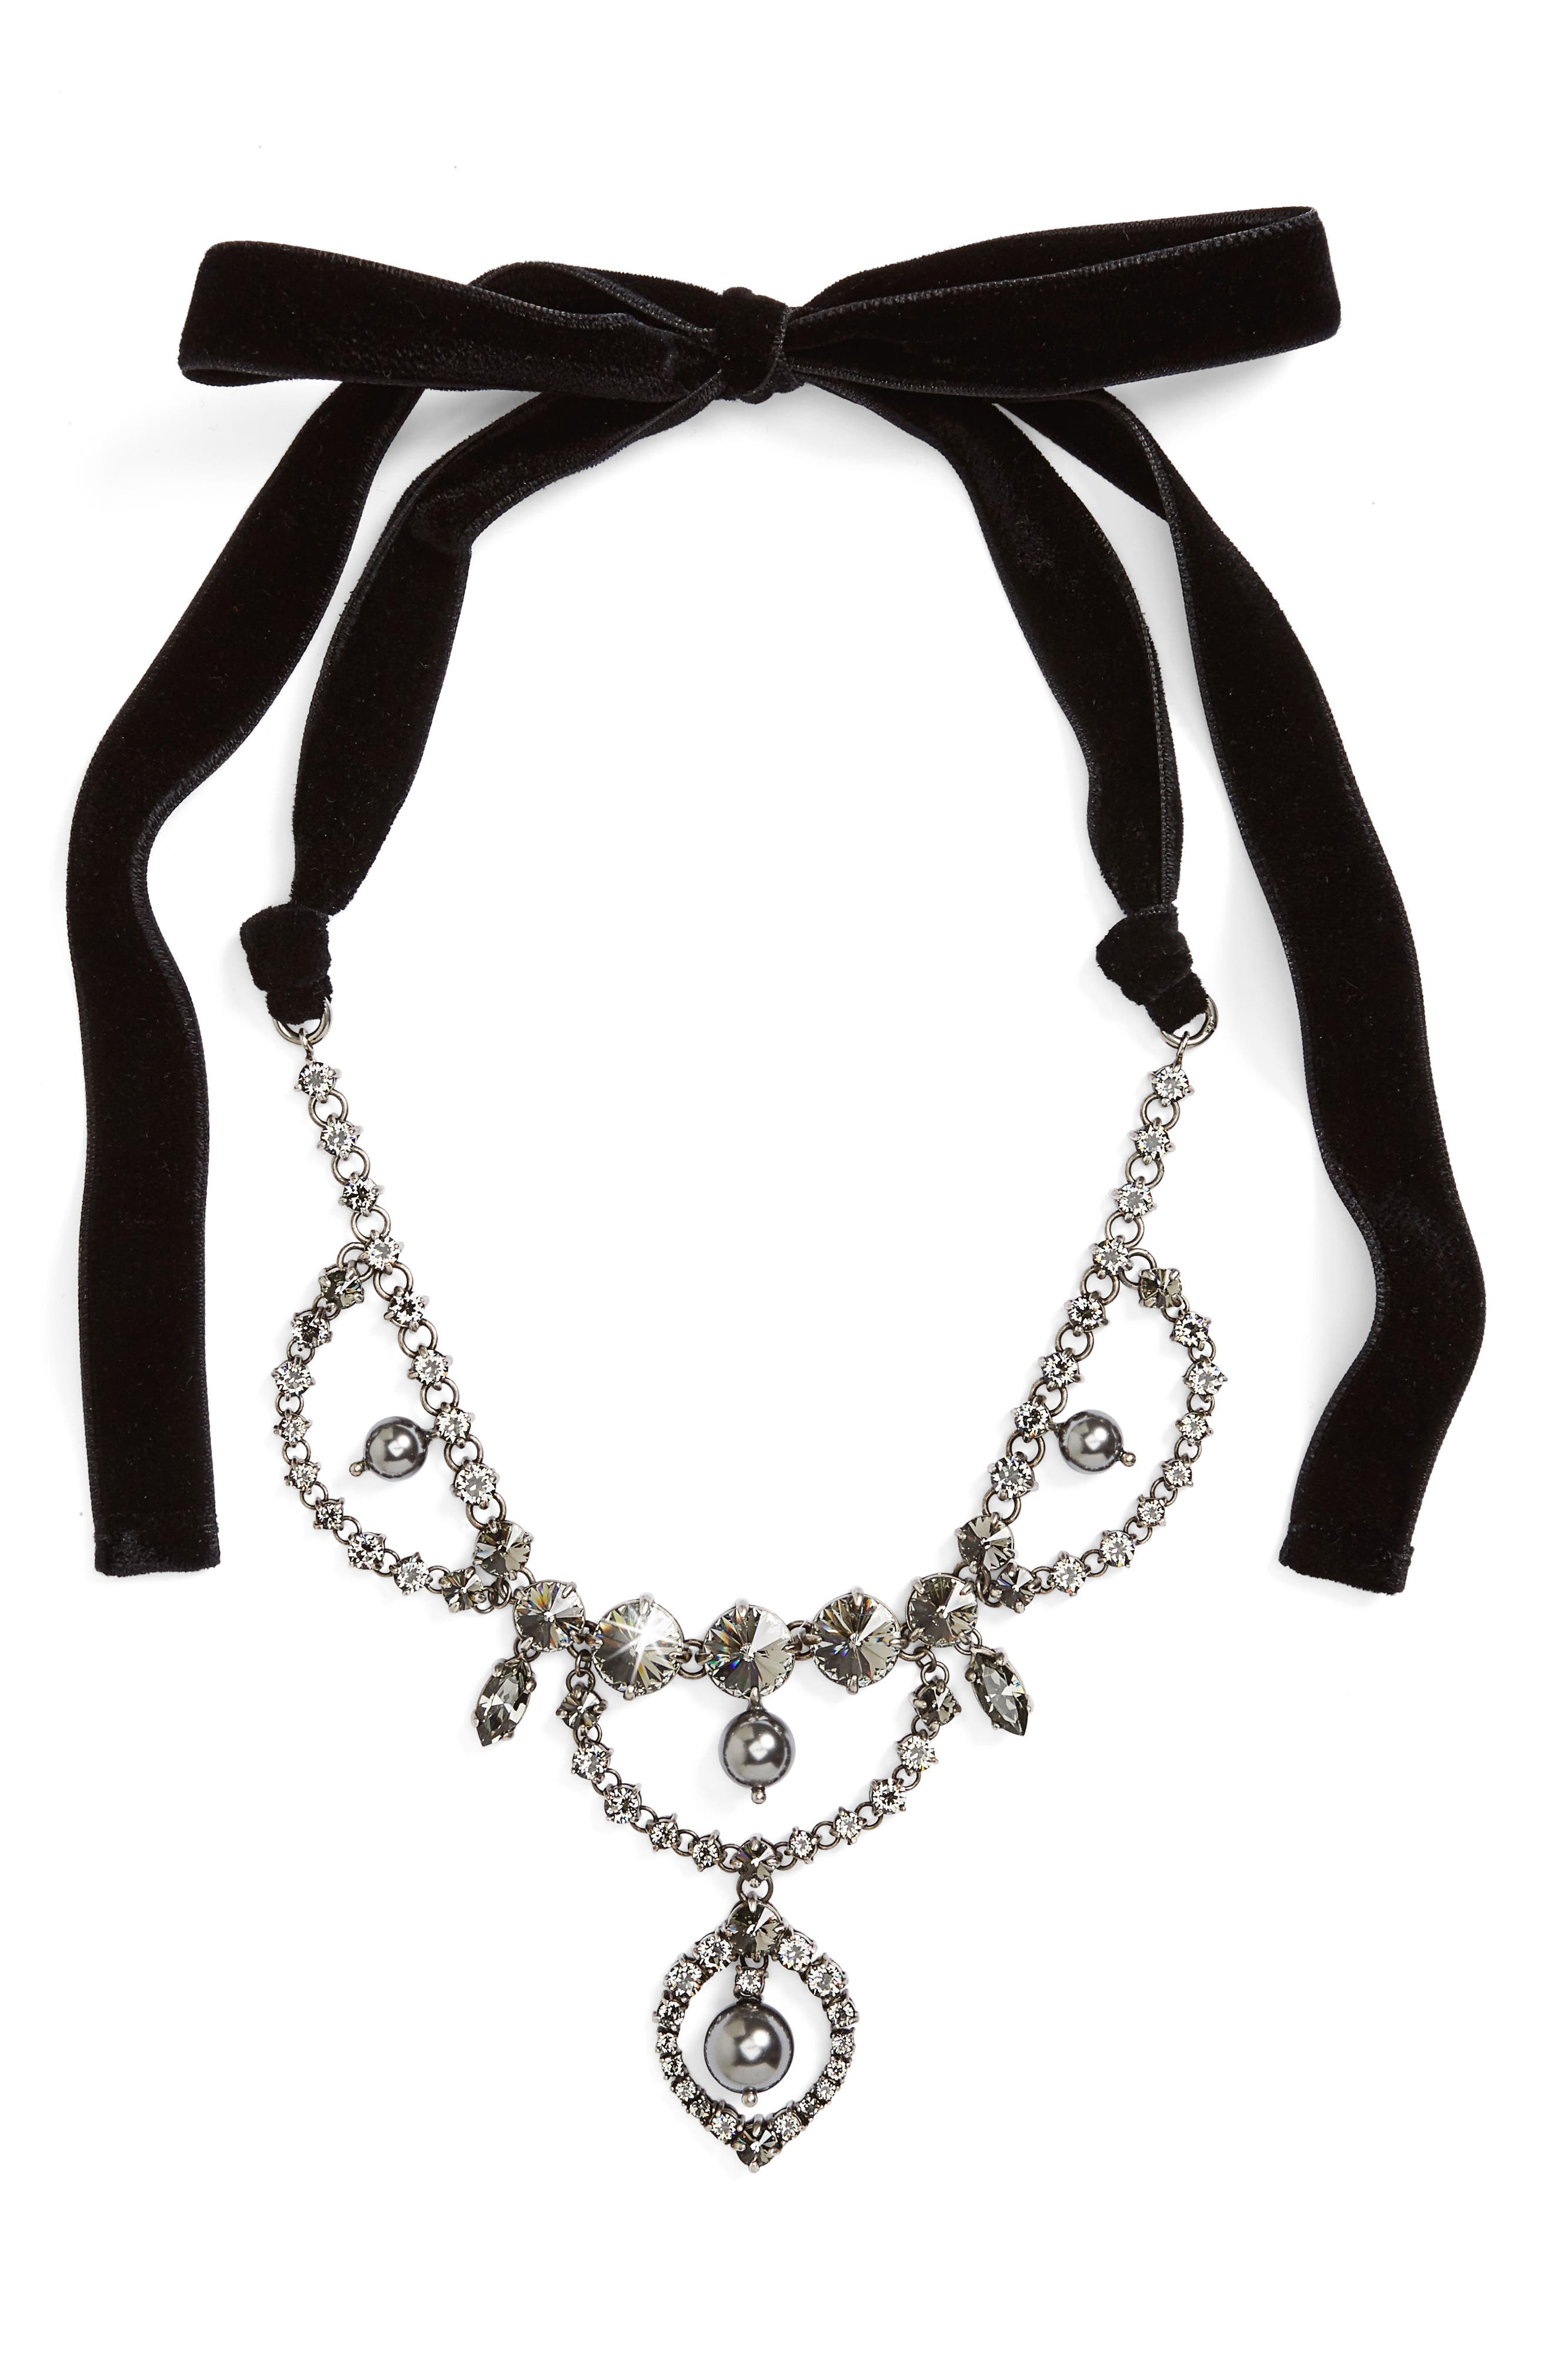 Alternate Image 1 Selected - Miu Miu Fume Imitation Pearl & Ribbon Statement Necklace